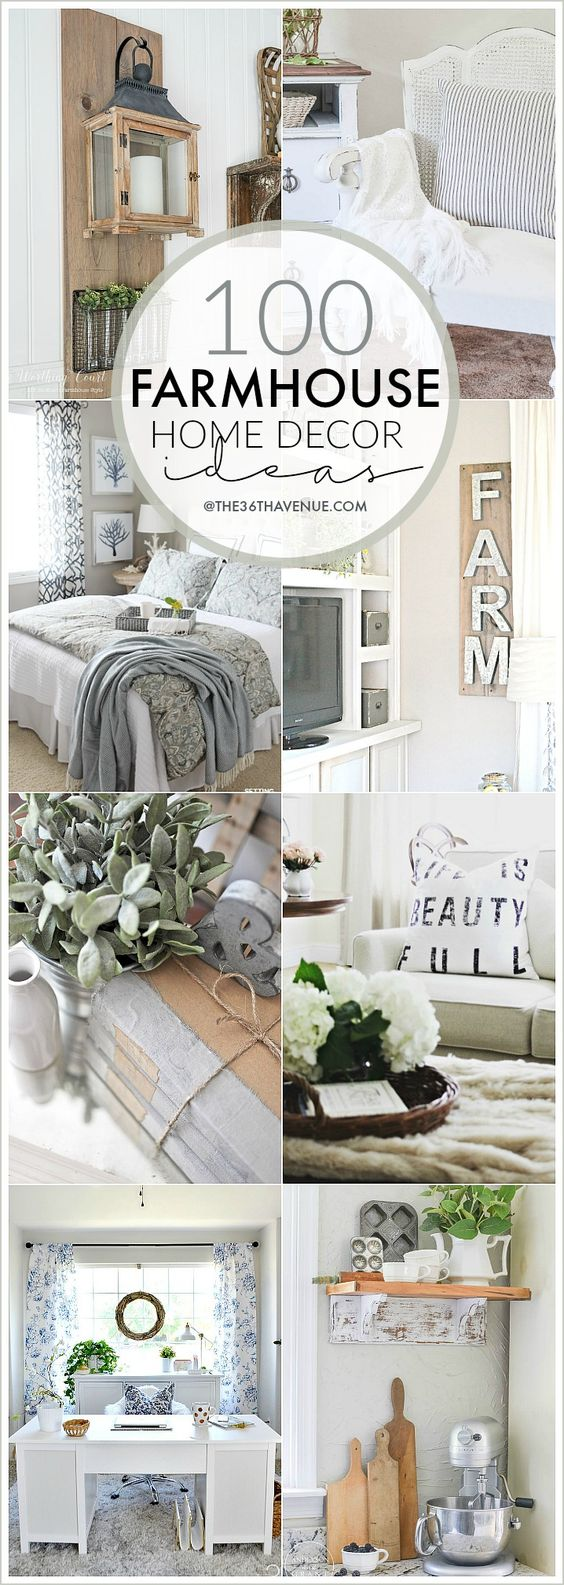 100 DIY Farmhouse Home Decor Ideas